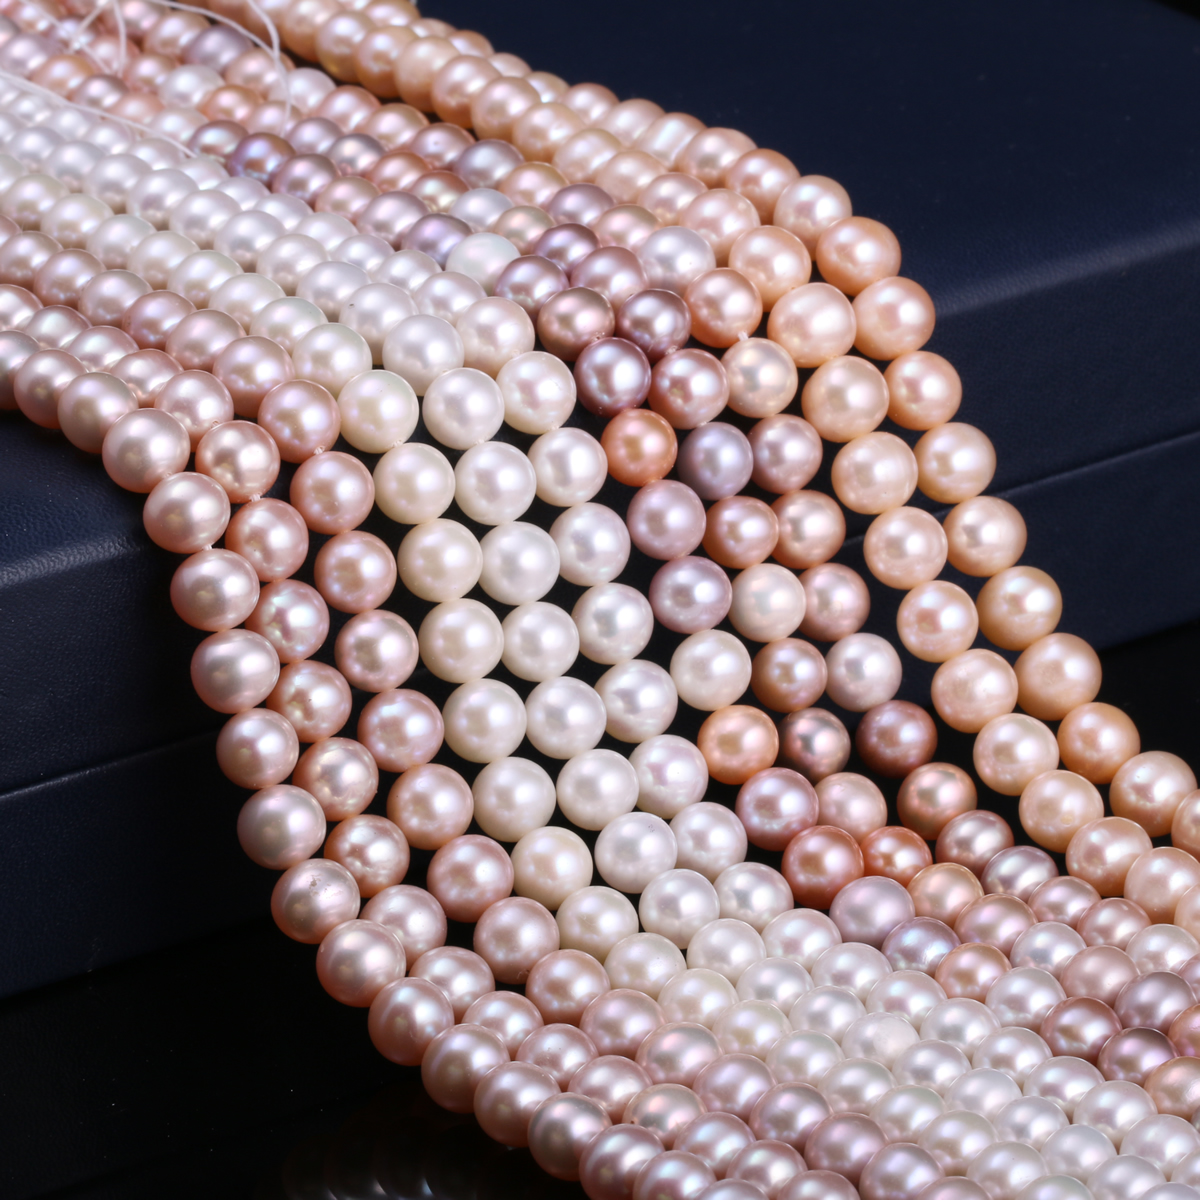 Natural Freshwater Cultured Pearls Beads Round 100% Natural Pearls for Jewelry Making Necklace Bracelet 15 Inches Size 7-8mm edi genuine natural freshwater pearls 5mm 100